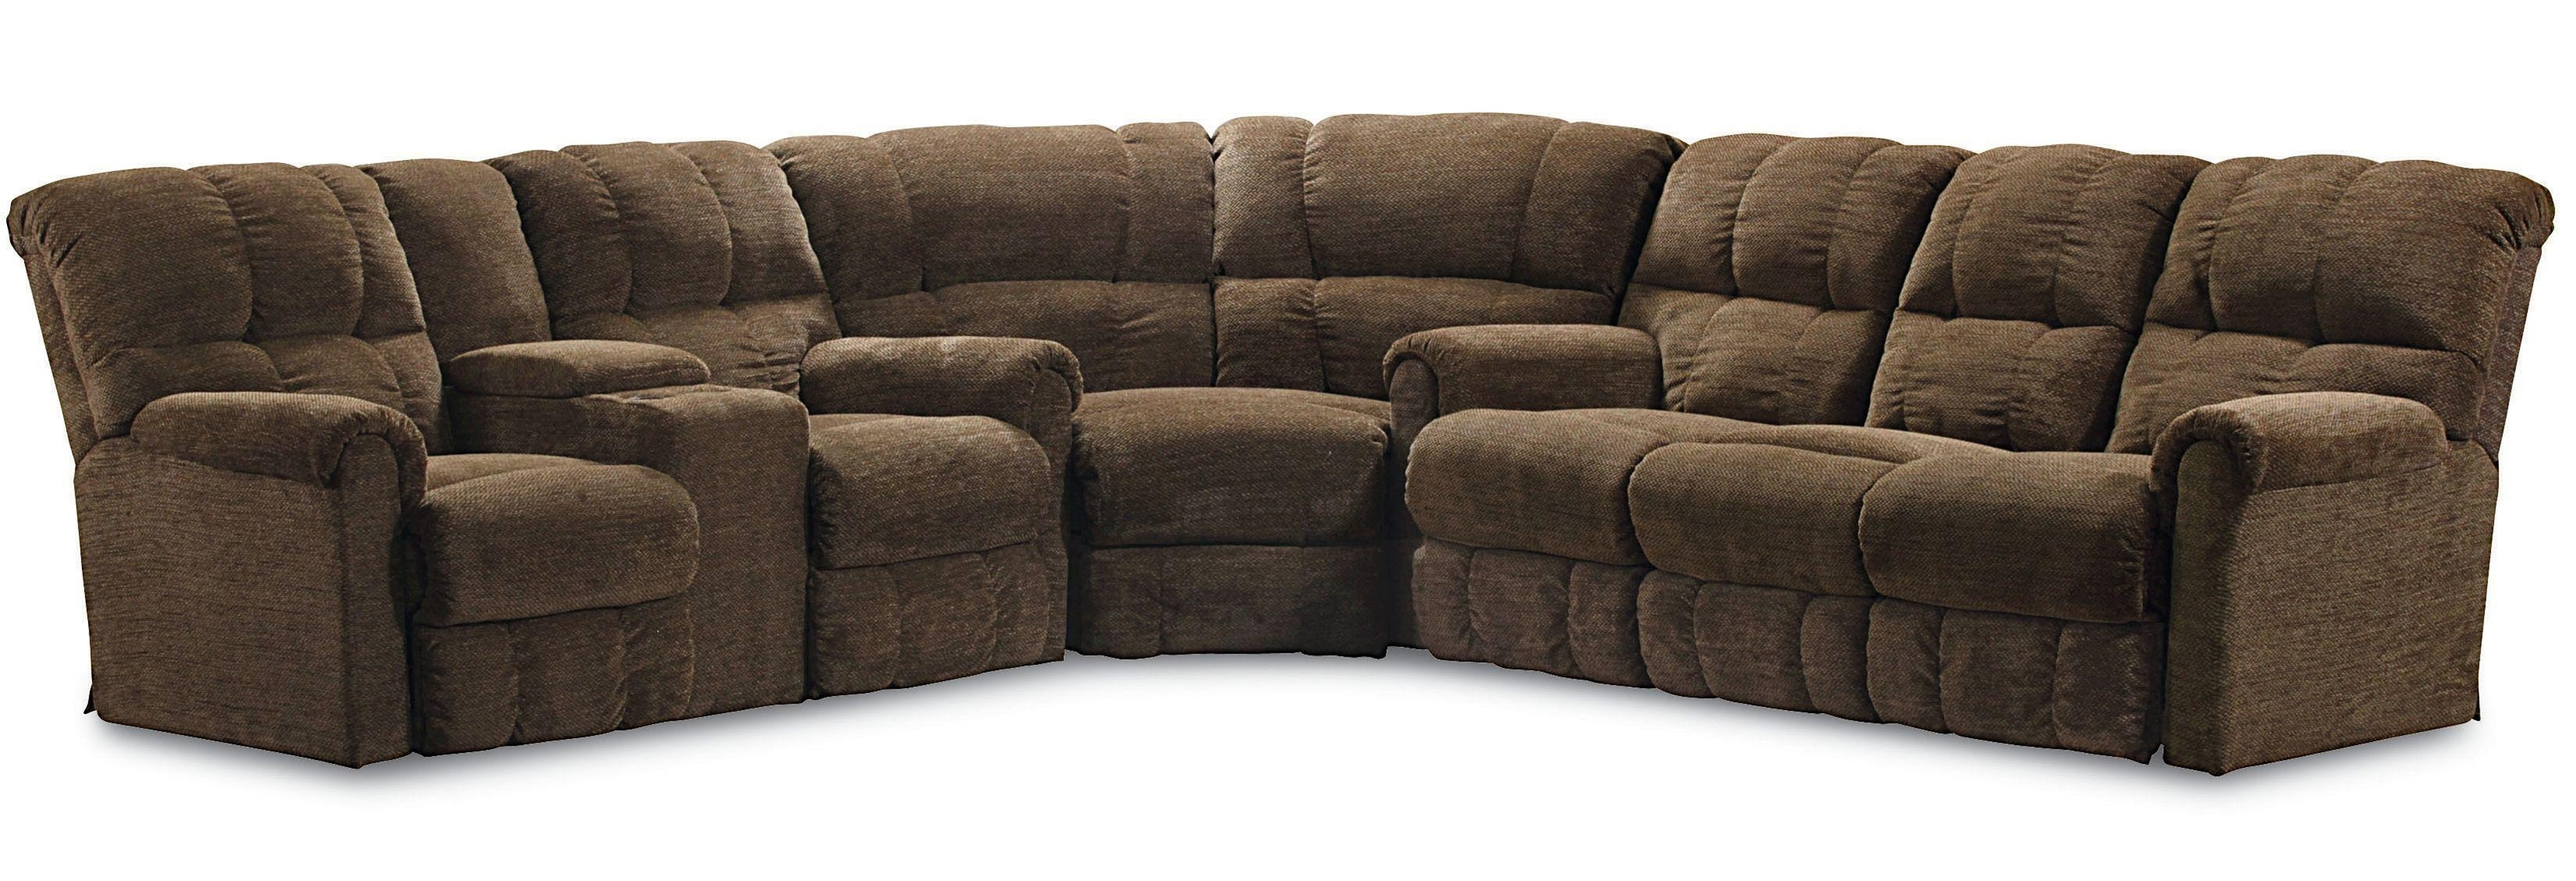 Lane Griffin Casual Three Piece Reclining Sectional Sofa With Four with Sectional Sofas at Birmingham Al (Image 5 of 15)